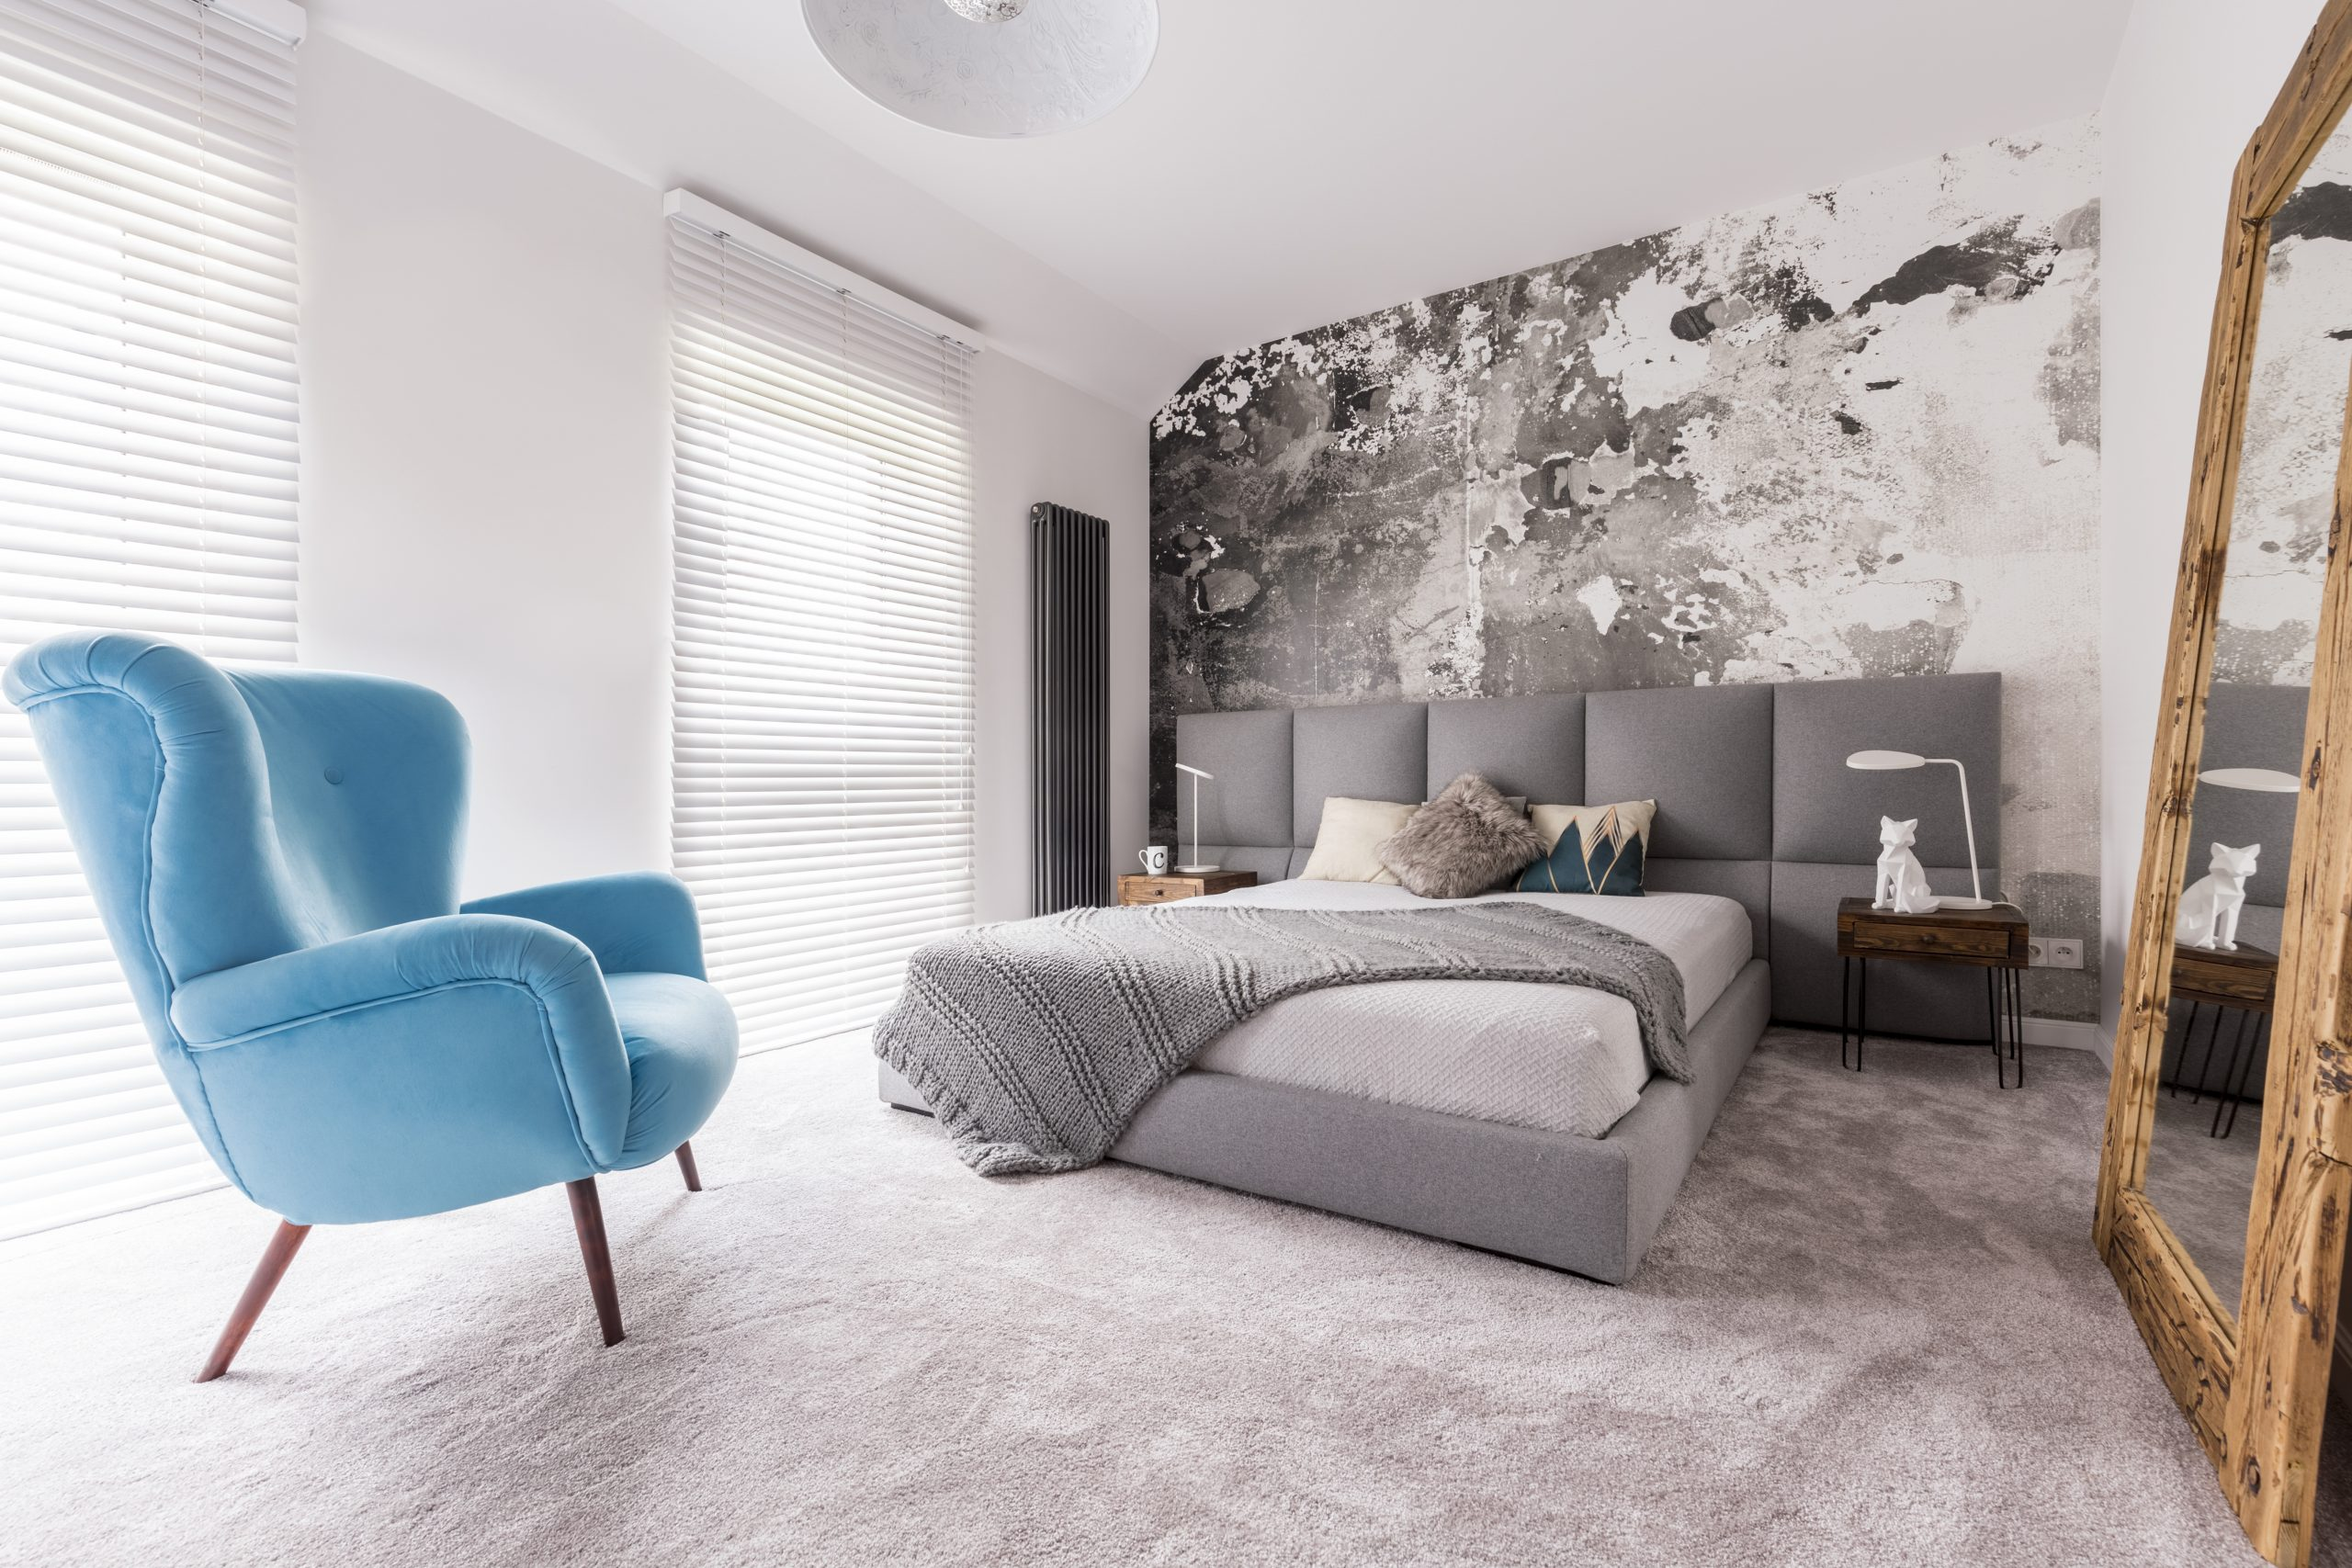 Comfortable, blue chair in a bedroom standing next to a double bed with pillows